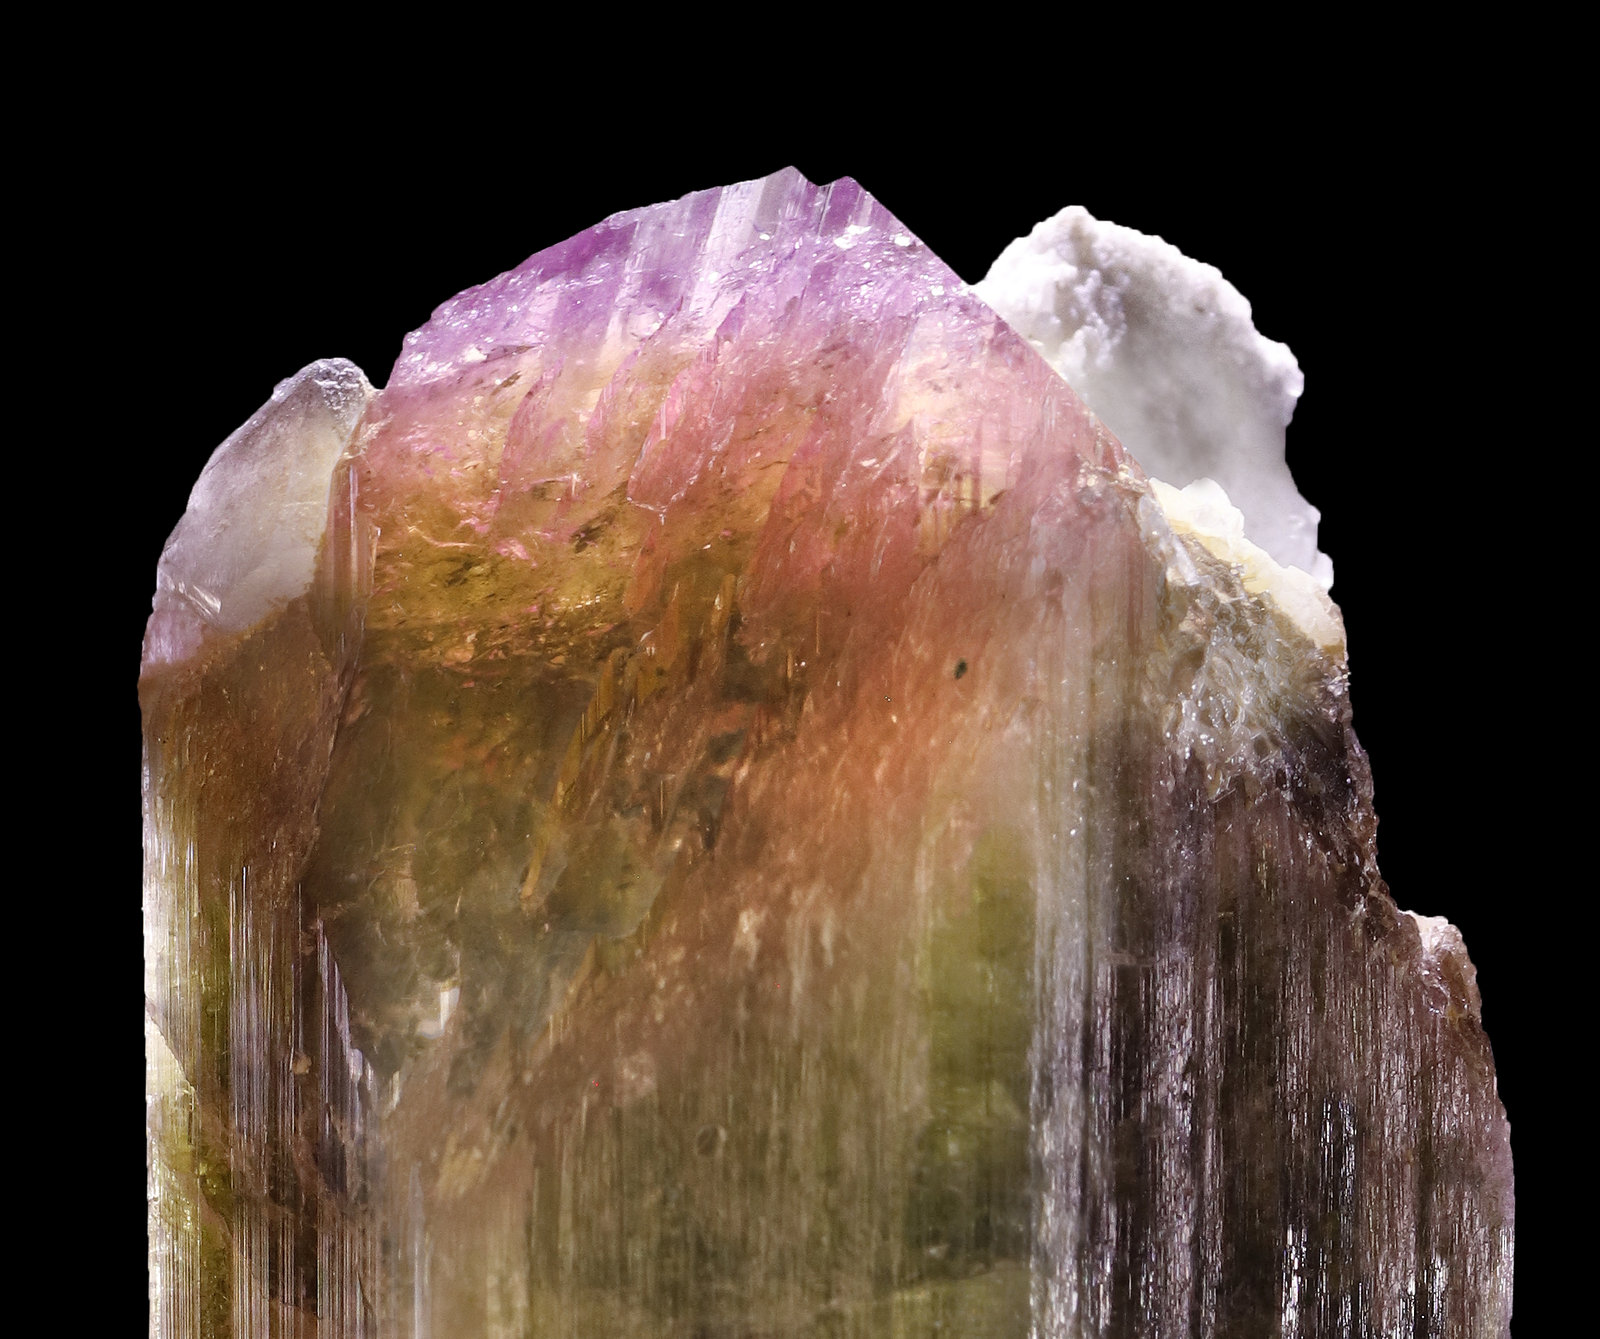 specimens/s_imagesAM0/Elbaite-EF94AM0_3354_d1.jpg